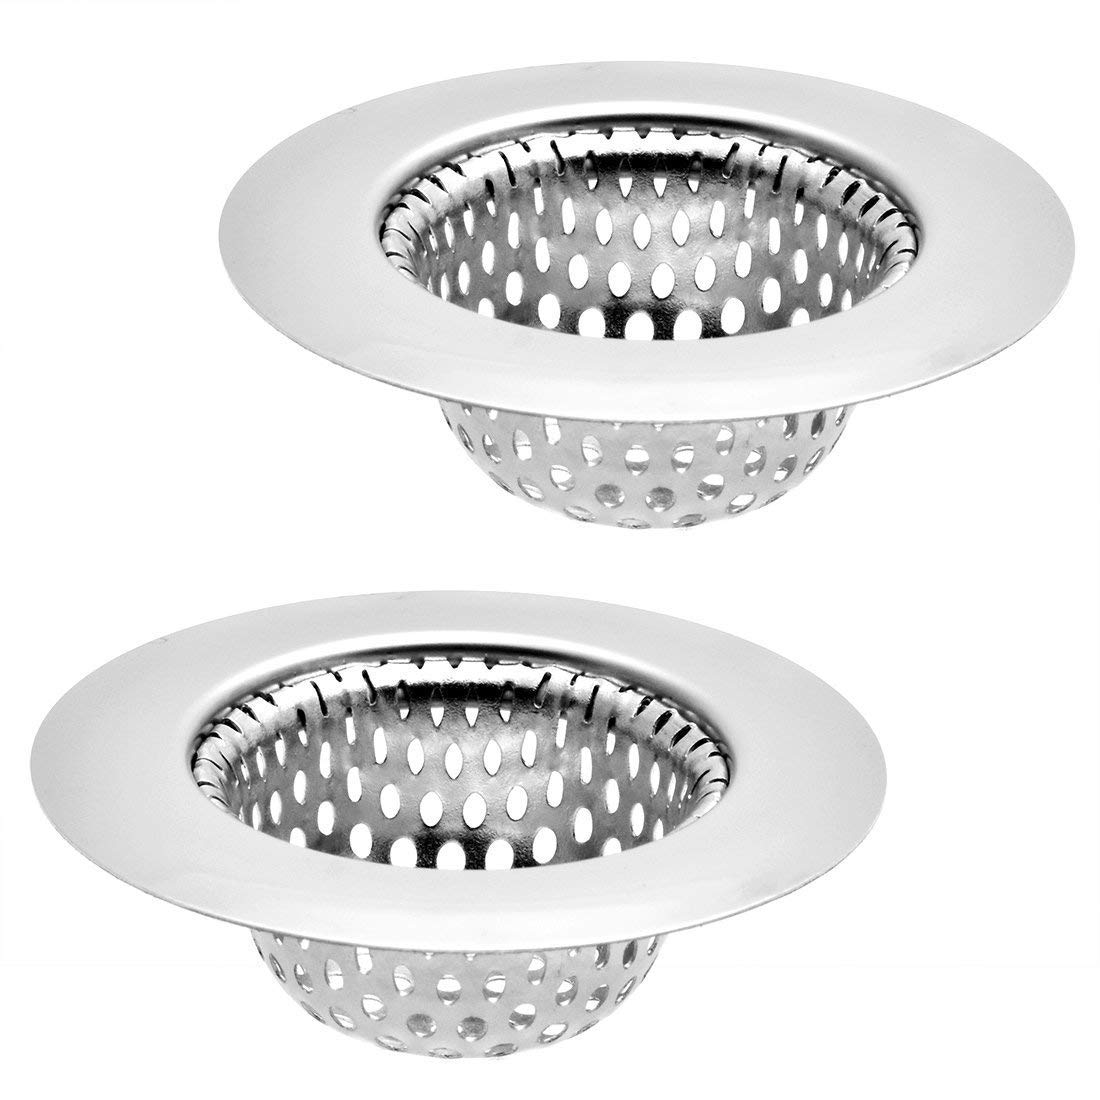 "2 Pack - 2.75"" Top / 1.5"" Basket, Stainless Steel Slop, Utility, Kitchen and Bathroom Sink Strainer. 1/8"" Holes."